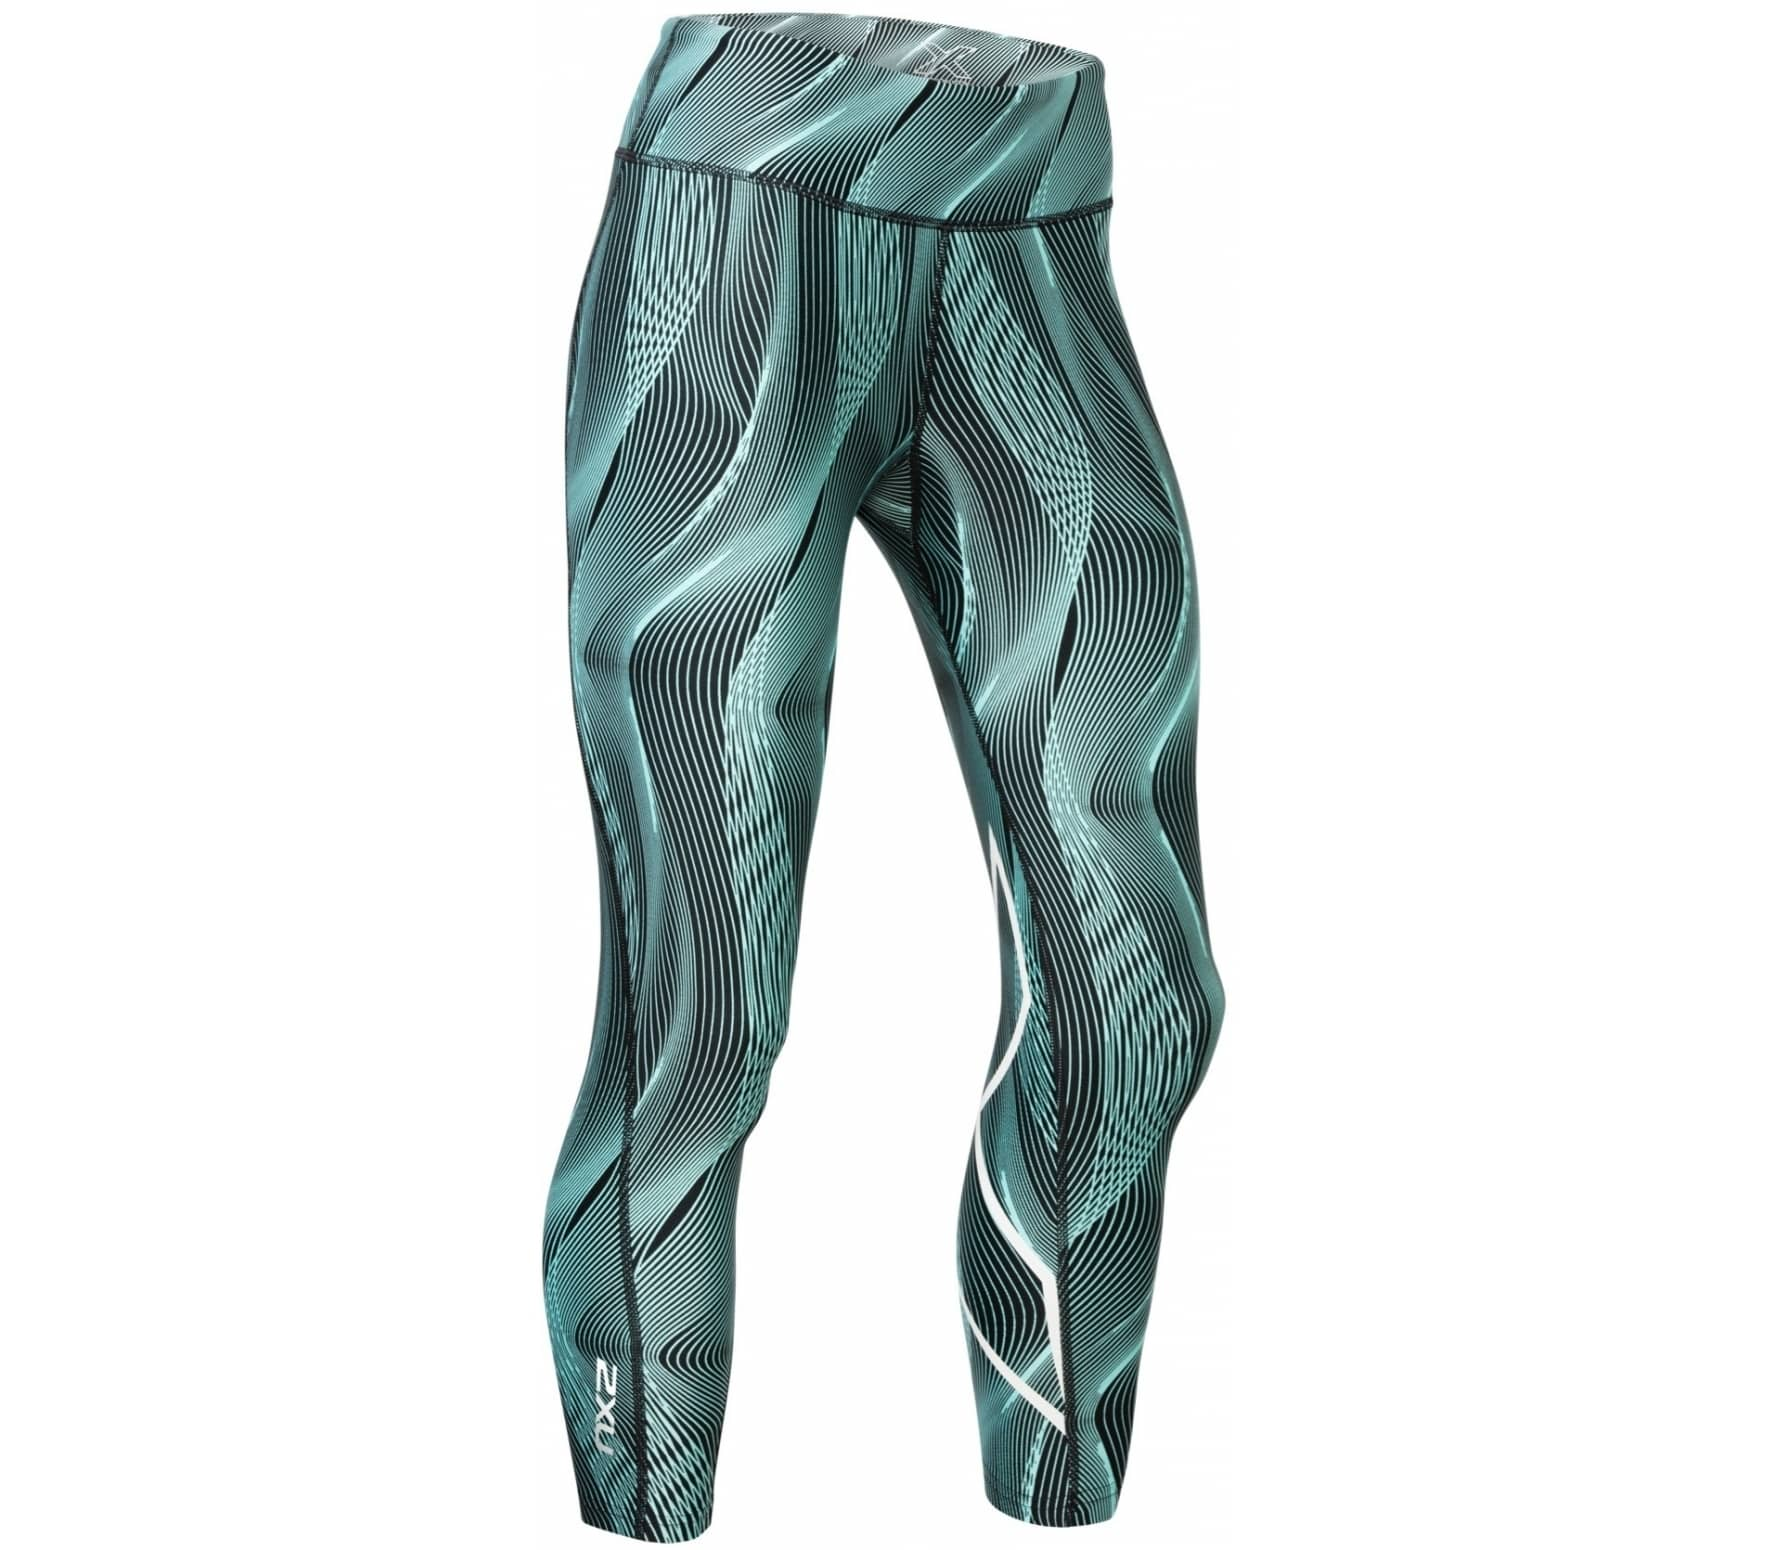 8a823958694416 2XU - Print Mid-Rise Compression Tights 7/8 with Storage women's running  pants